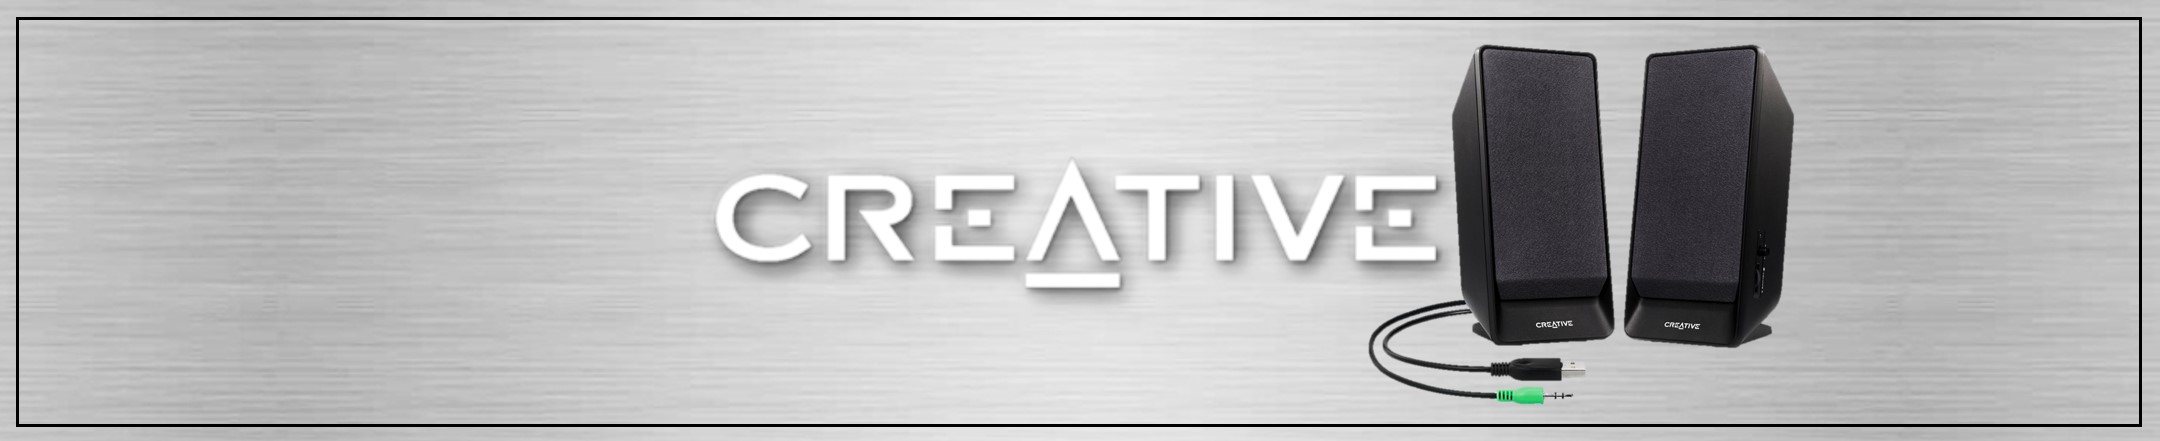 Creative PC Speakers Banner